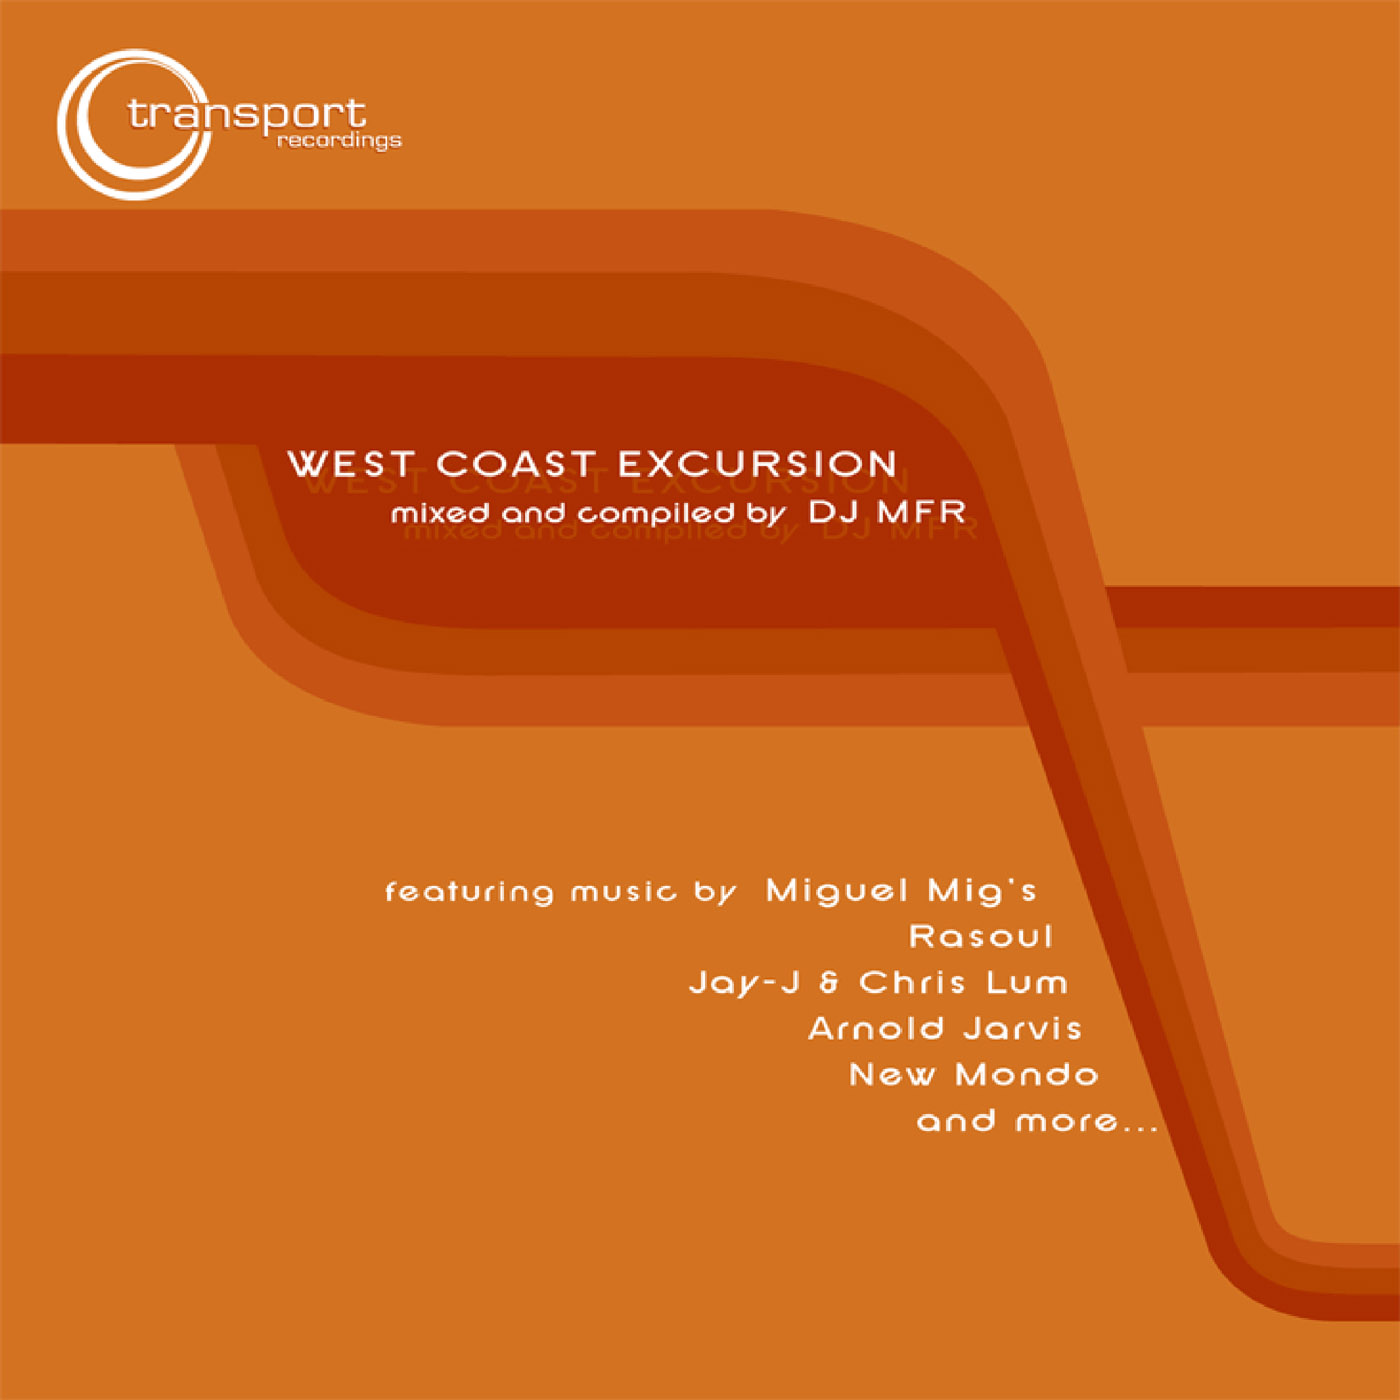 West Coast Excursion 1